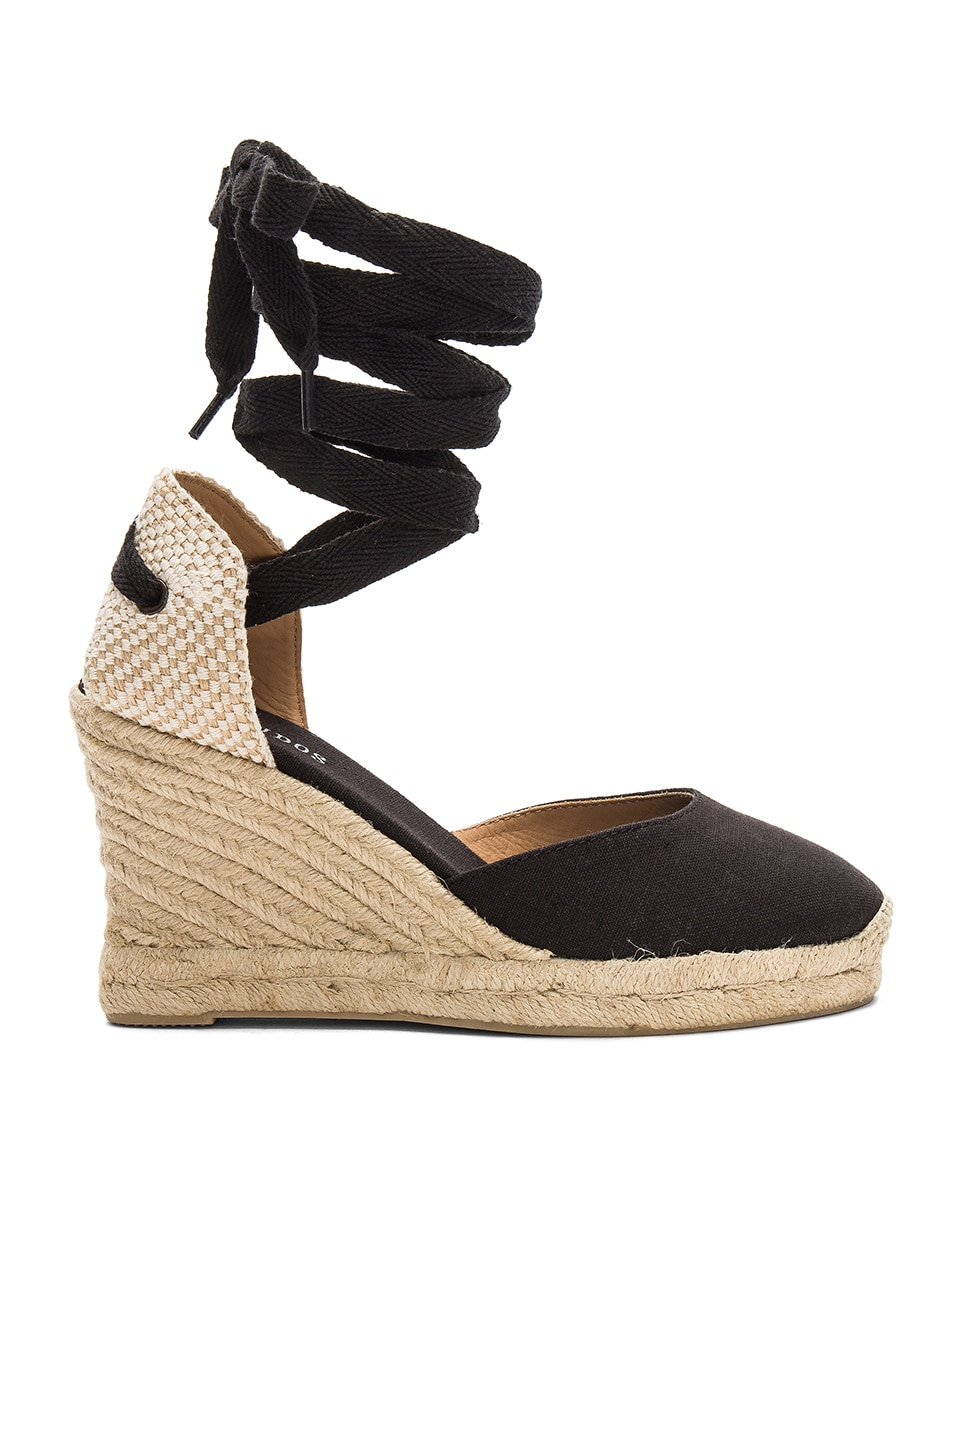 Soludos Tall Wedge in Black